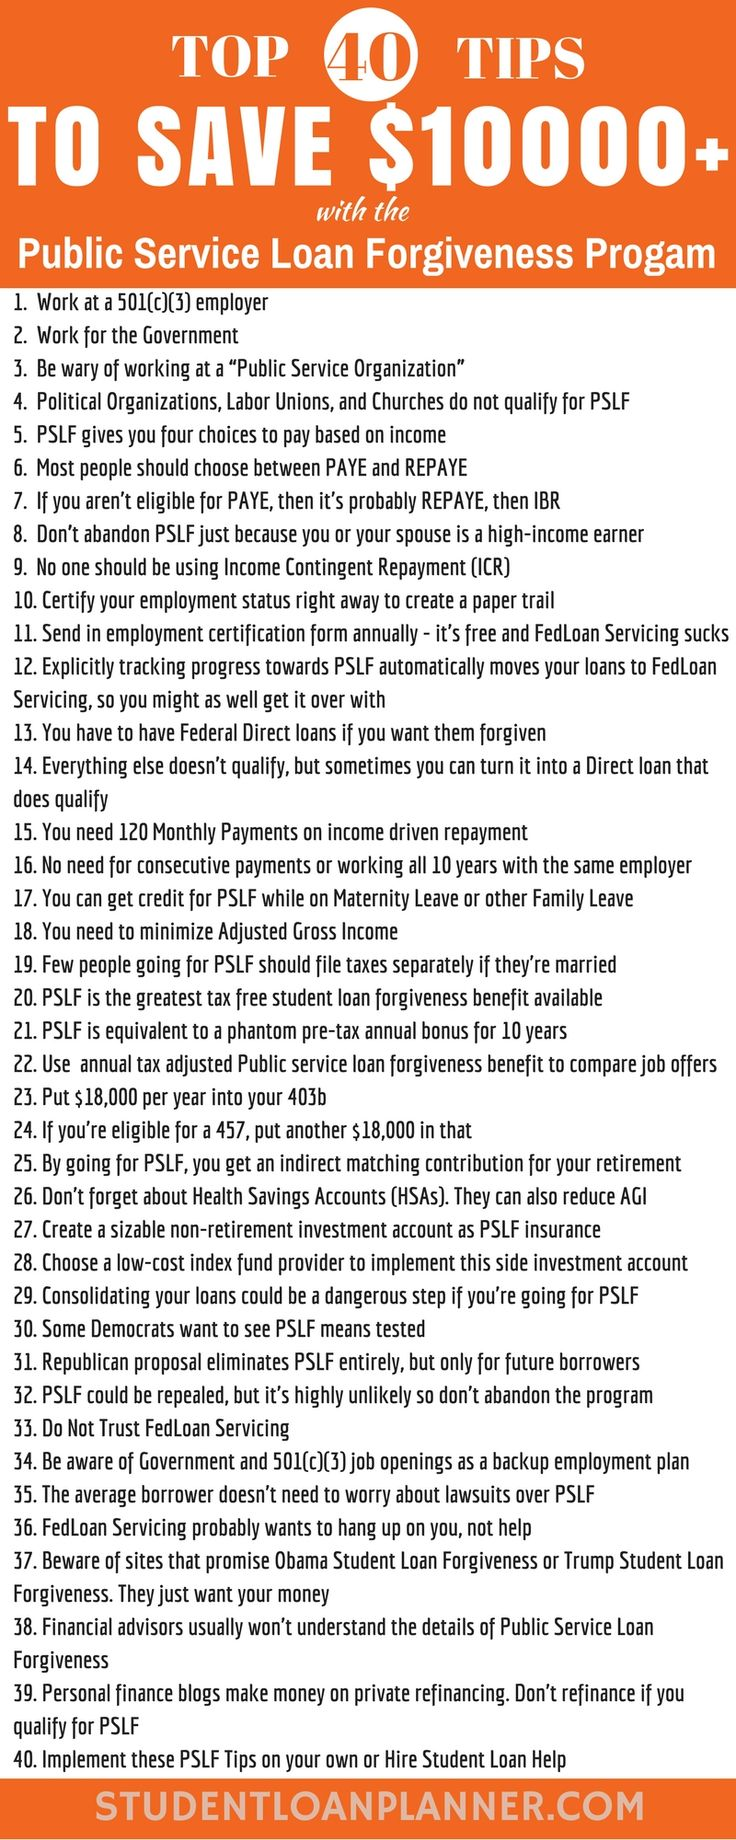 Public service loan forgiveness 40 tips to save thousands